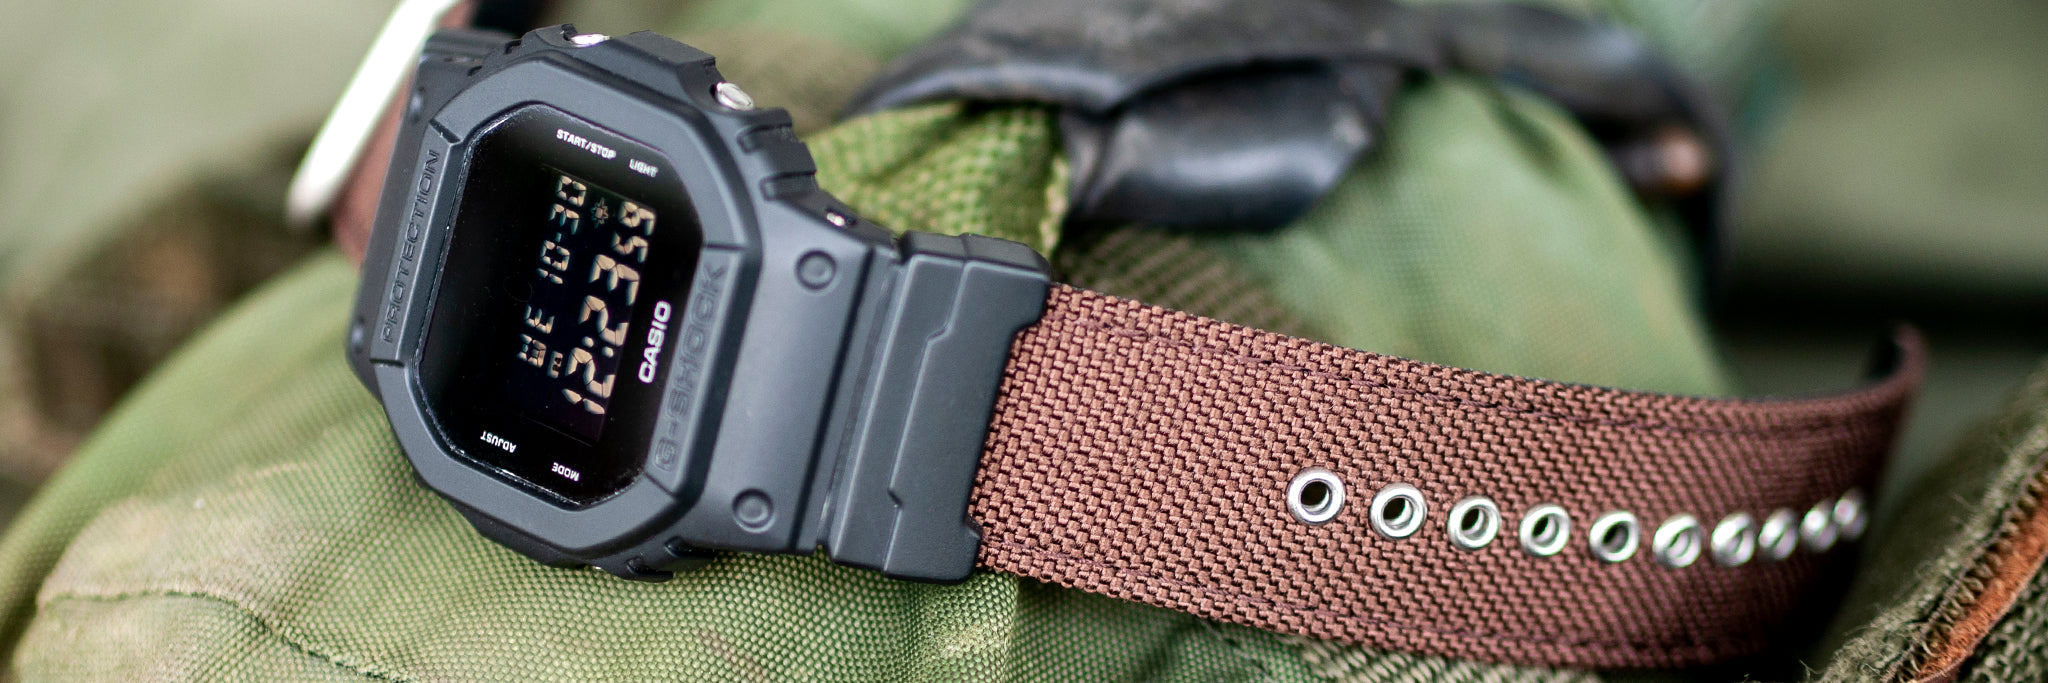 vario single pass cordura watch strap